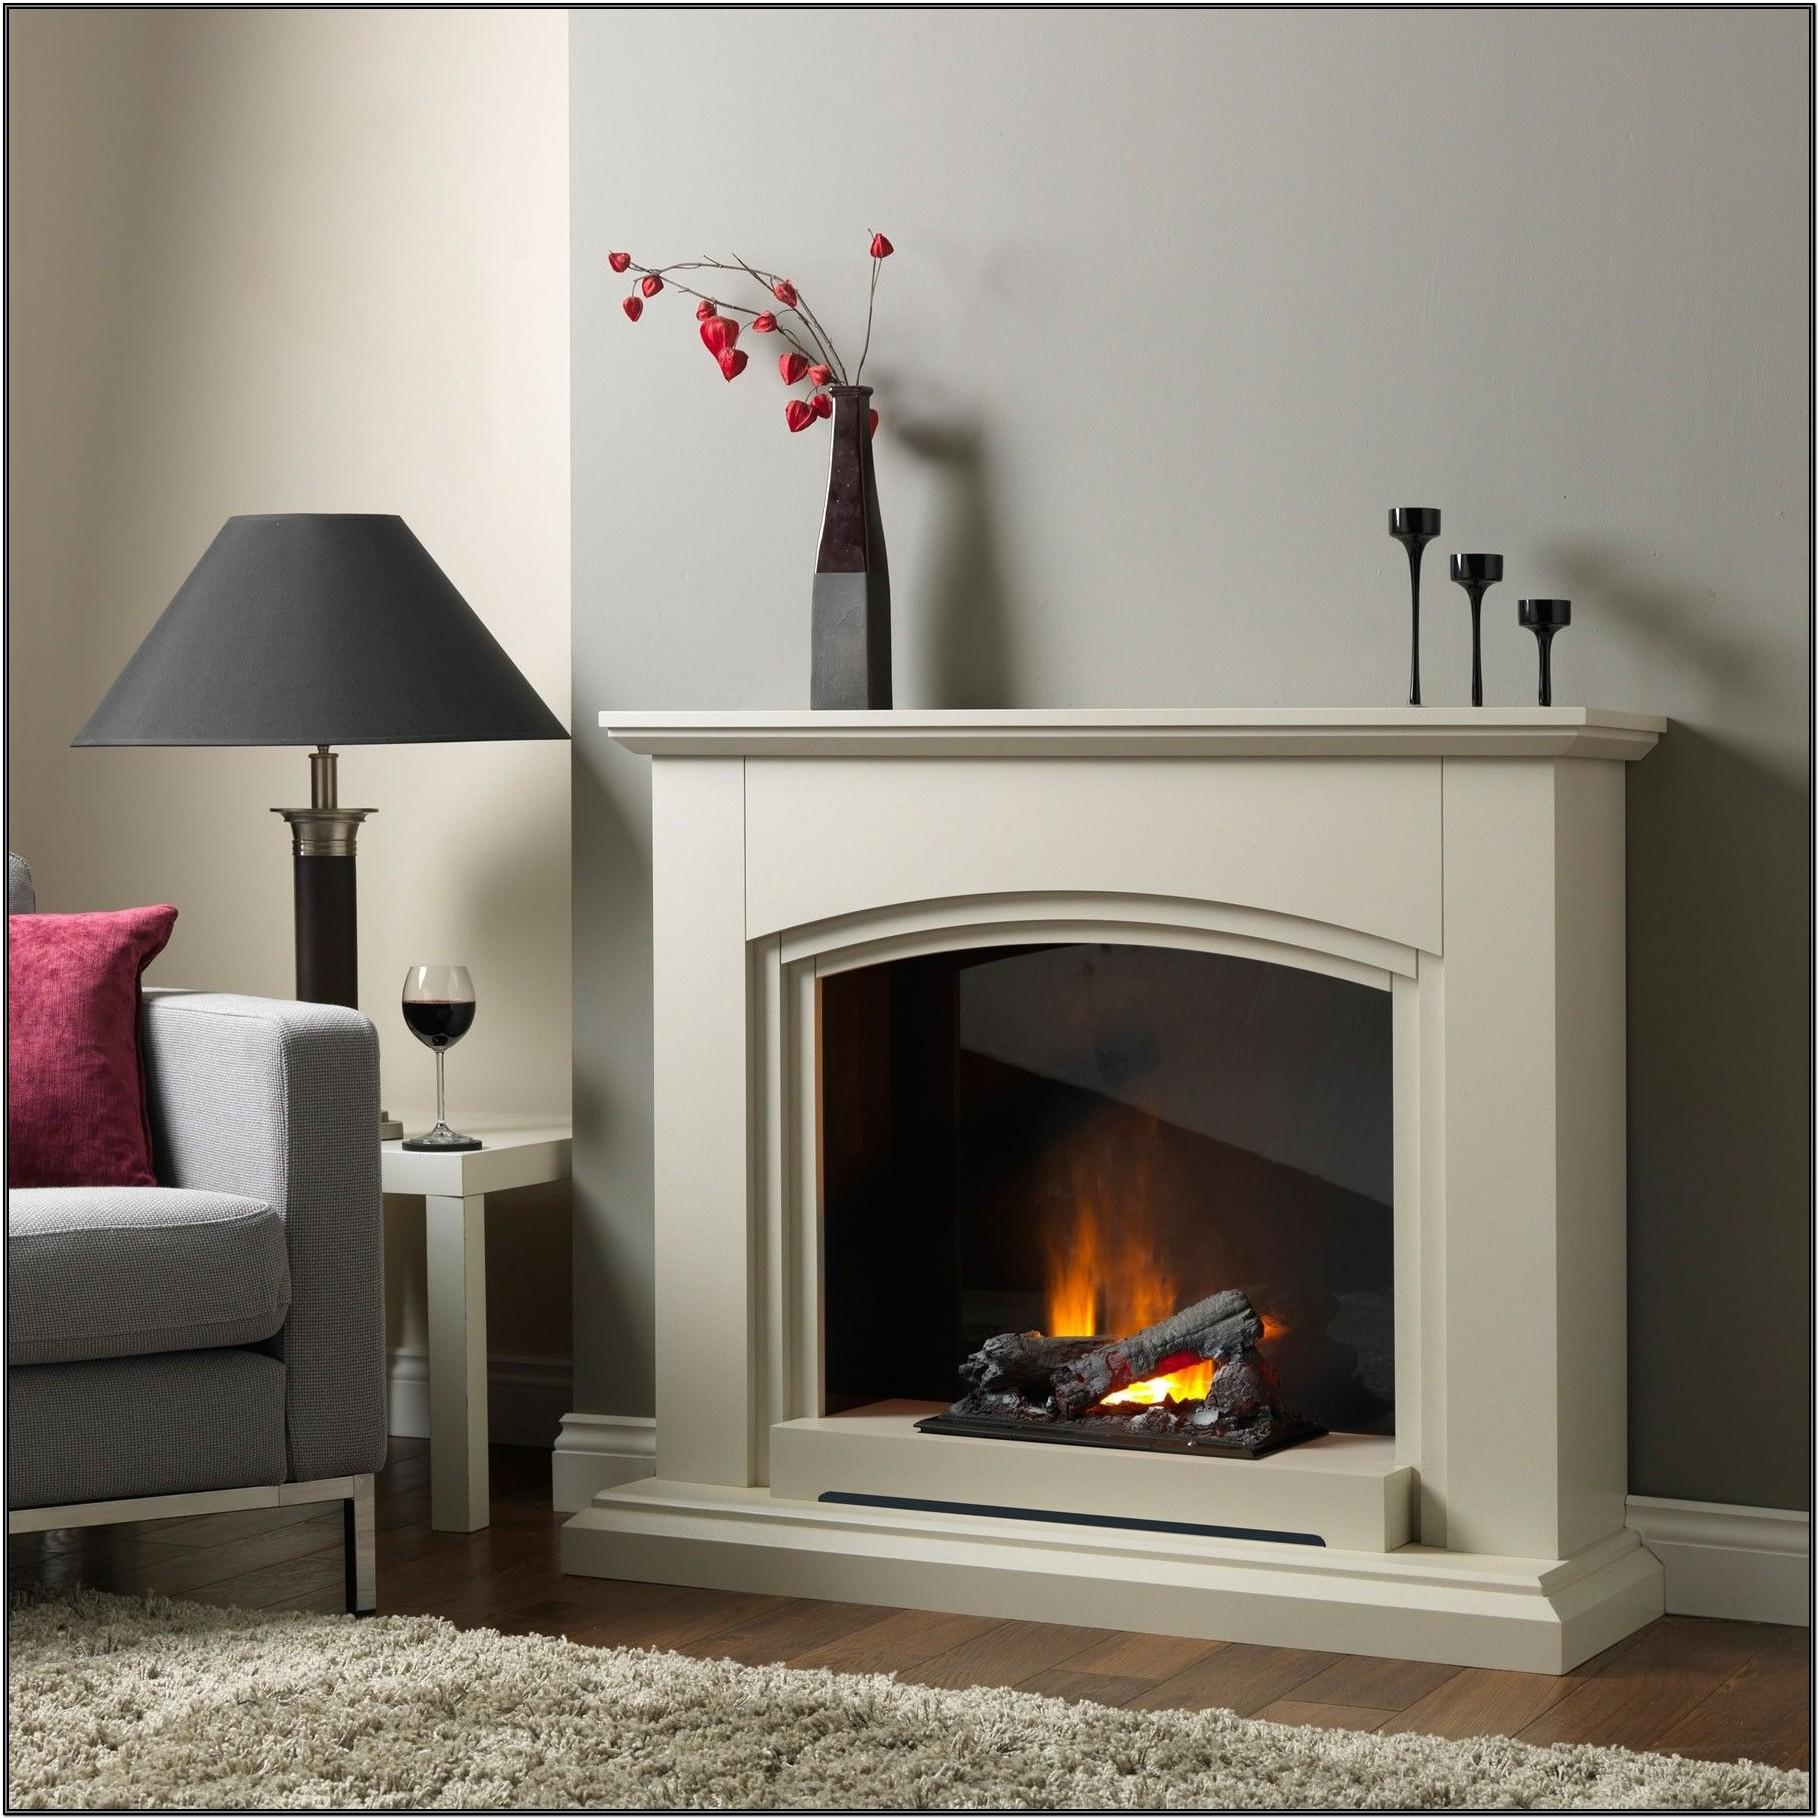 Living Room Electric Fire Ideas